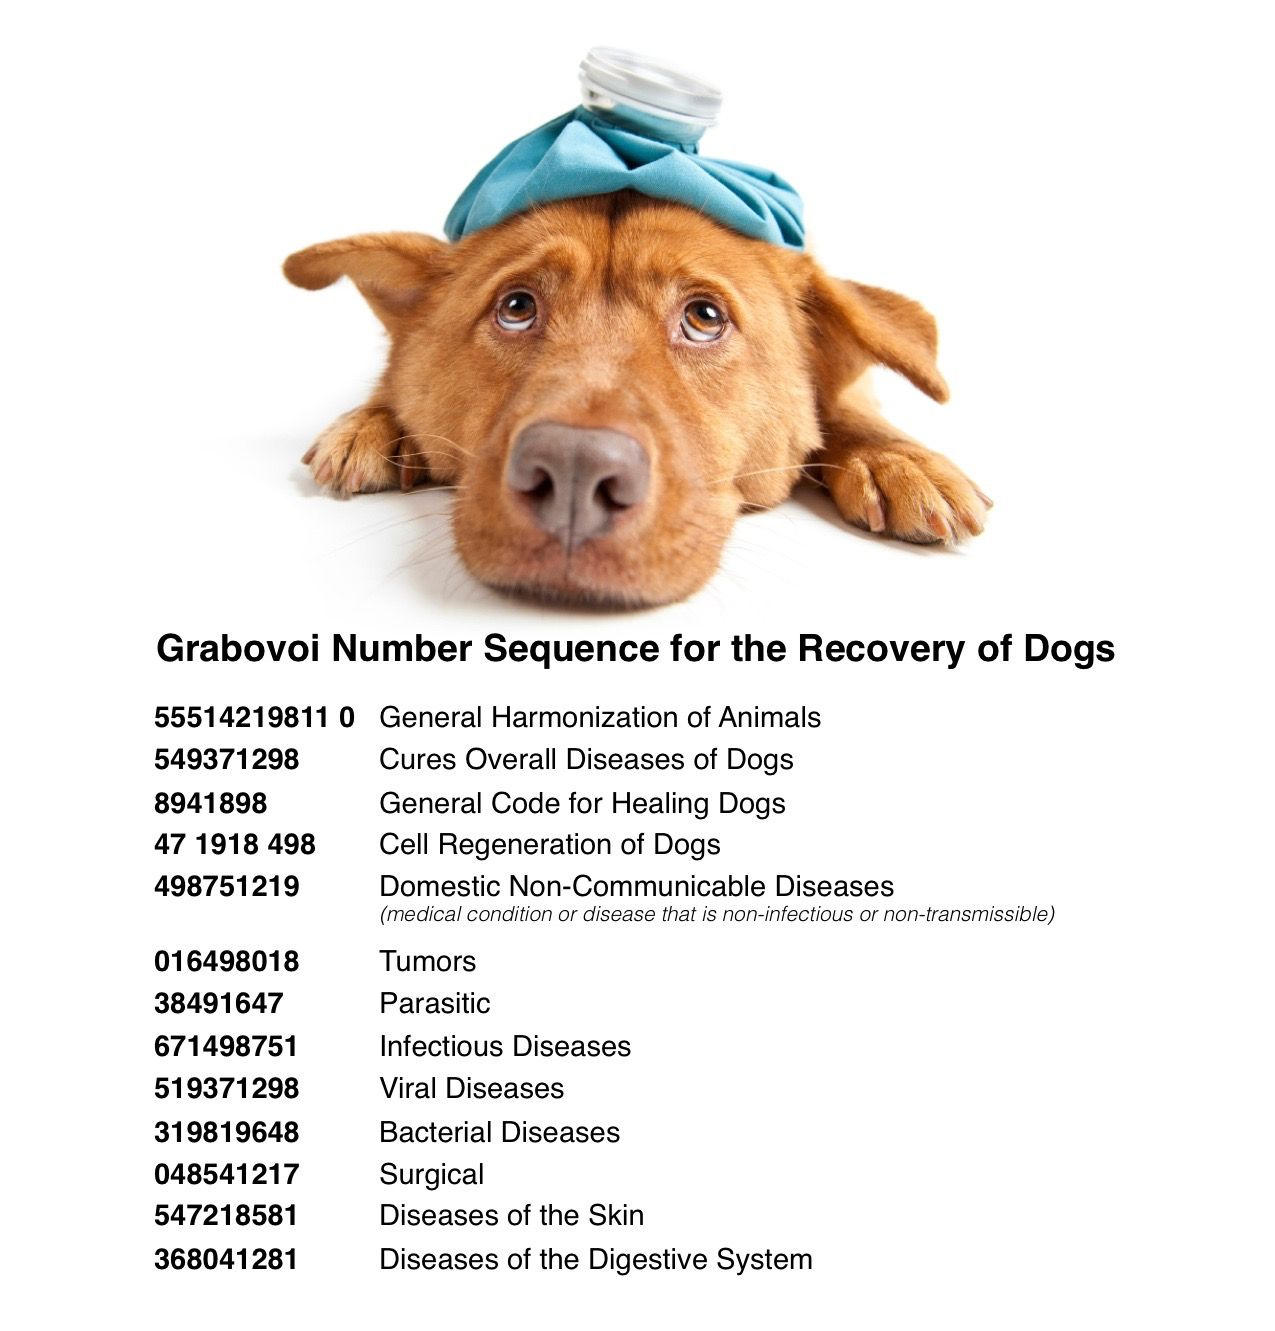 Grabovoi Number Sequence for the Recovery of Dogs.